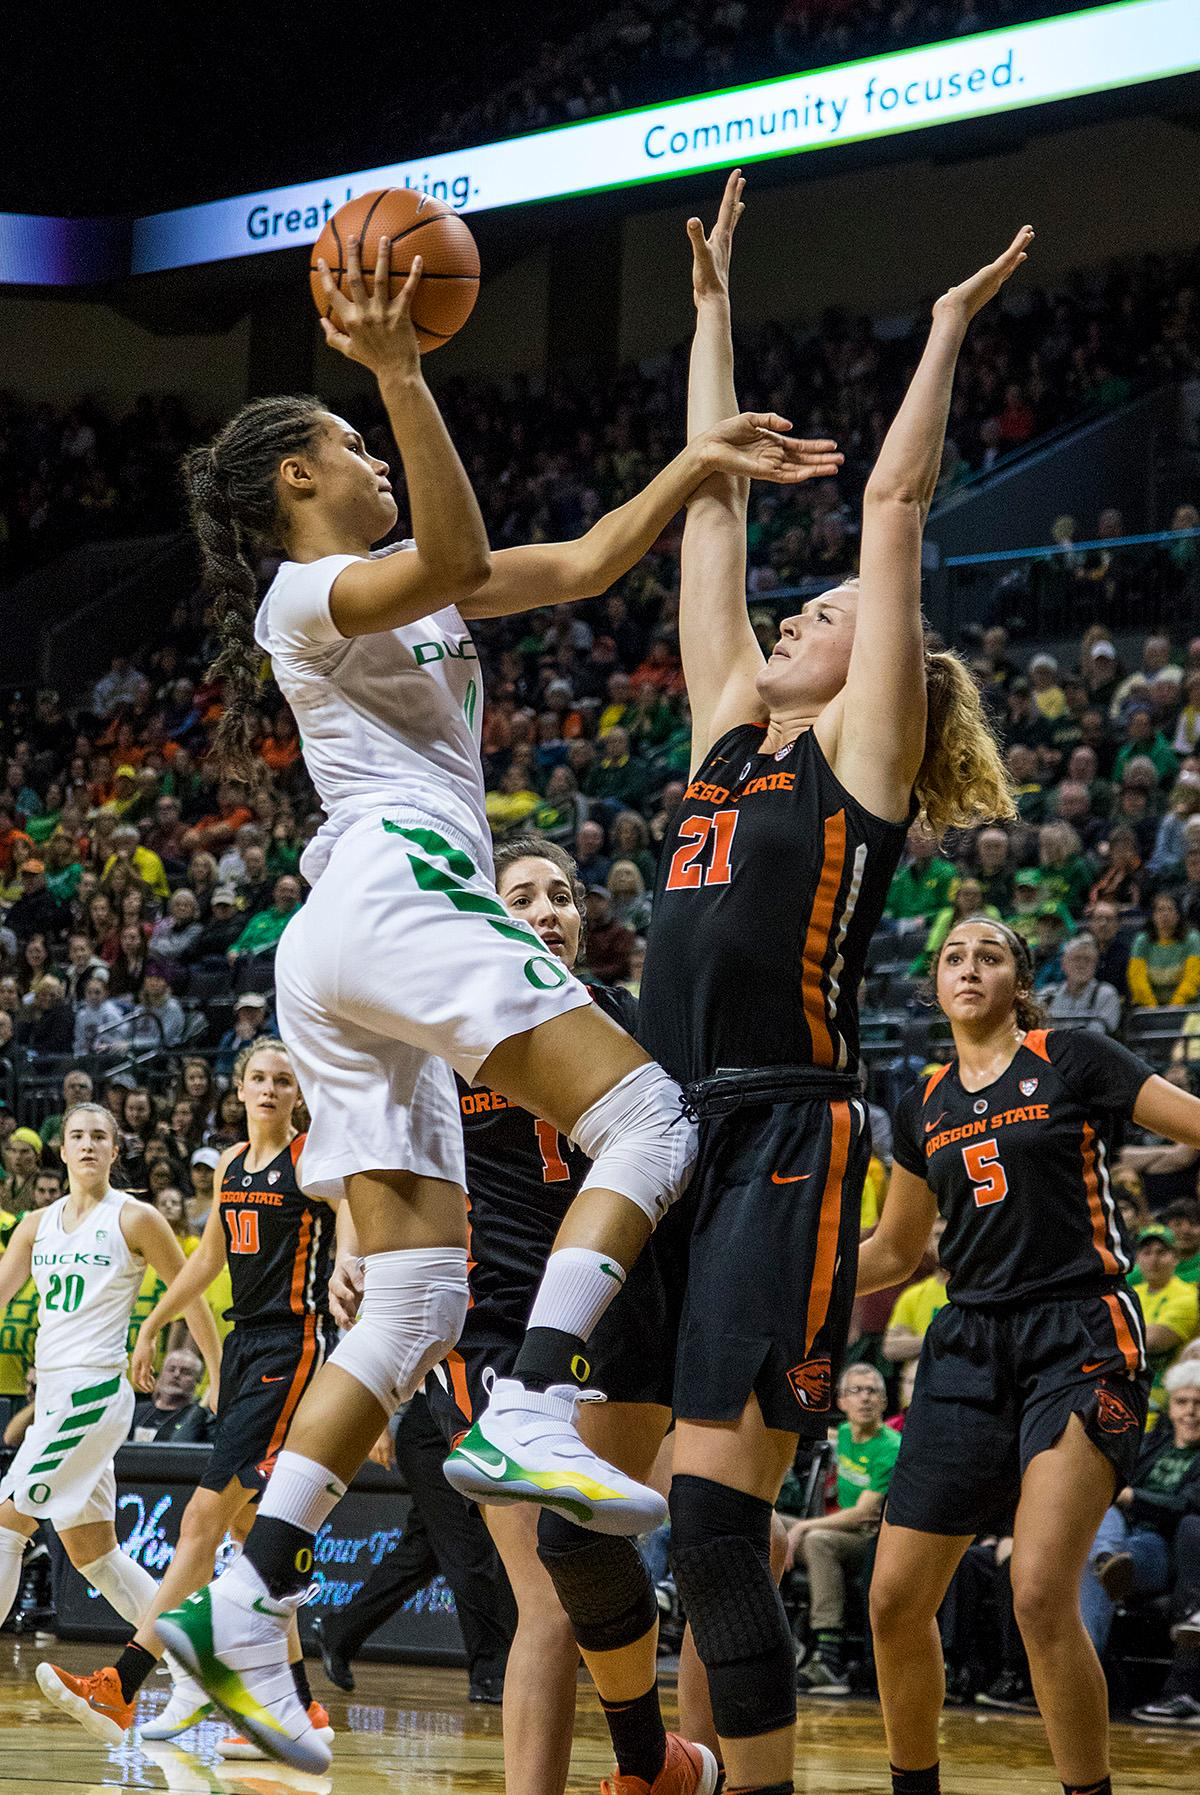 Oregon Ducks Satou Sabally (#0) makes her way to the basket. The Oregon Ducks defeated the Oregon State Beavers 75-63 on Sunday afternoon in front of a crowd of 7,249 at Matthew Knight Arena. The Ducks and Beavers split the two game Civil War with the Beavers defeating the Ducks on Friday night in Corvallis. The Ducks had four players in double digits: Satou Sabally with 21 points, Maite Cazorla with 16, Sabrina Ionescu with 15, and Mallory McGwire with 14. The Ducks shot 48.4% from the floor compared to the Beavers 37.3%. The Ducks are now 7-1 in conference play. Photo by Rhianna Gelhart, Oregon News Lab